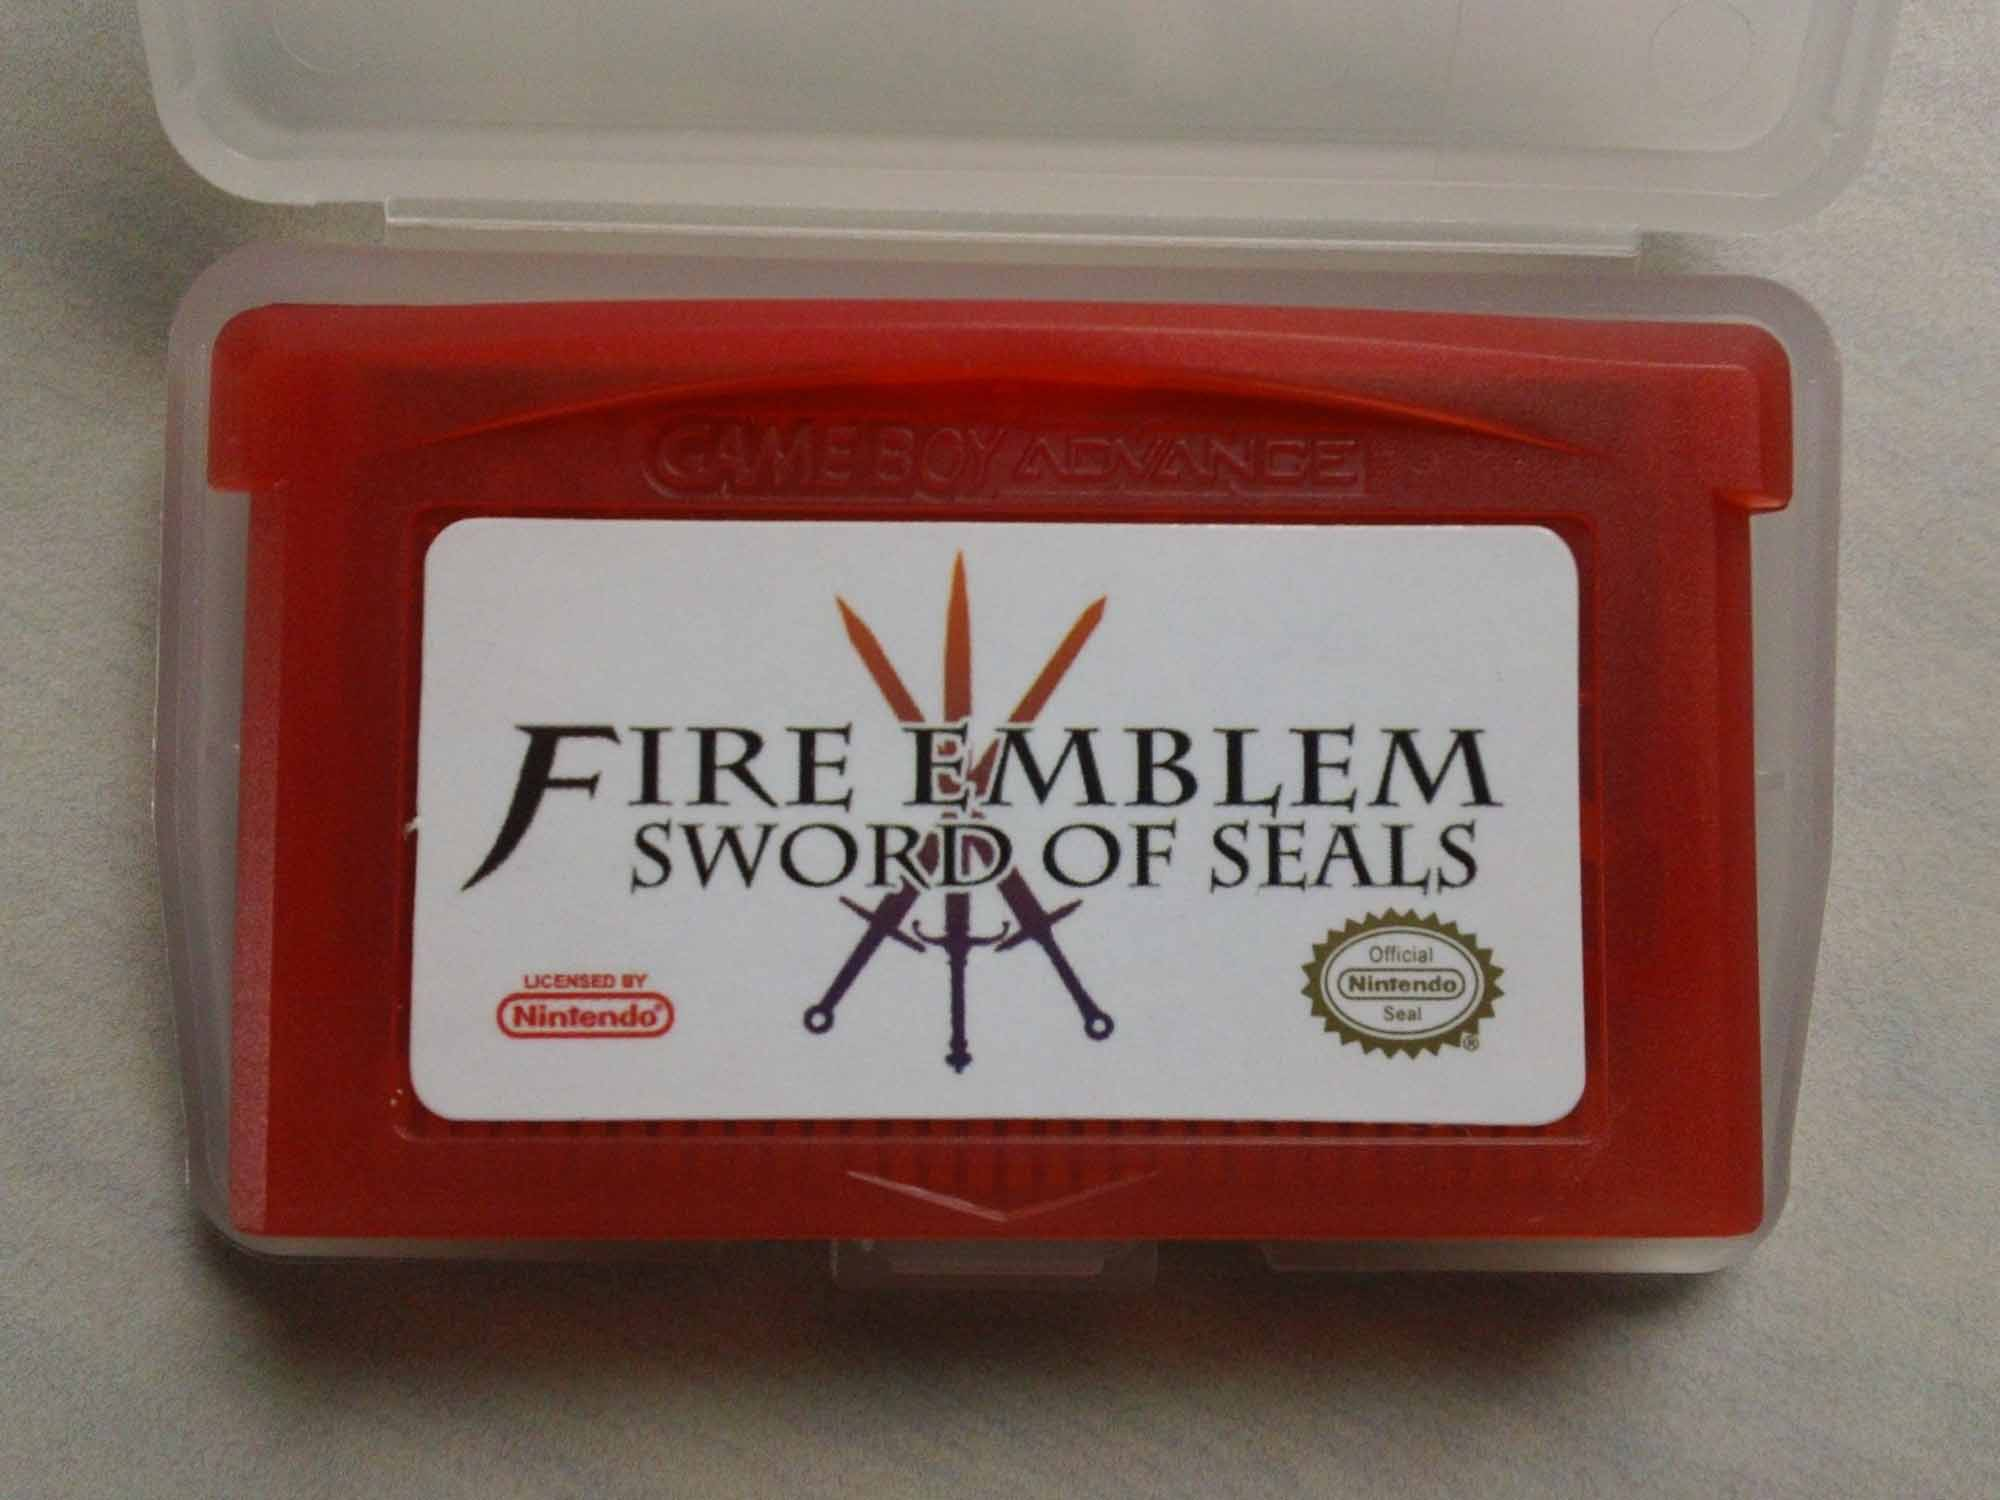 Gameboy color and advance rpg games - Fire Emblem Sword Of Seals